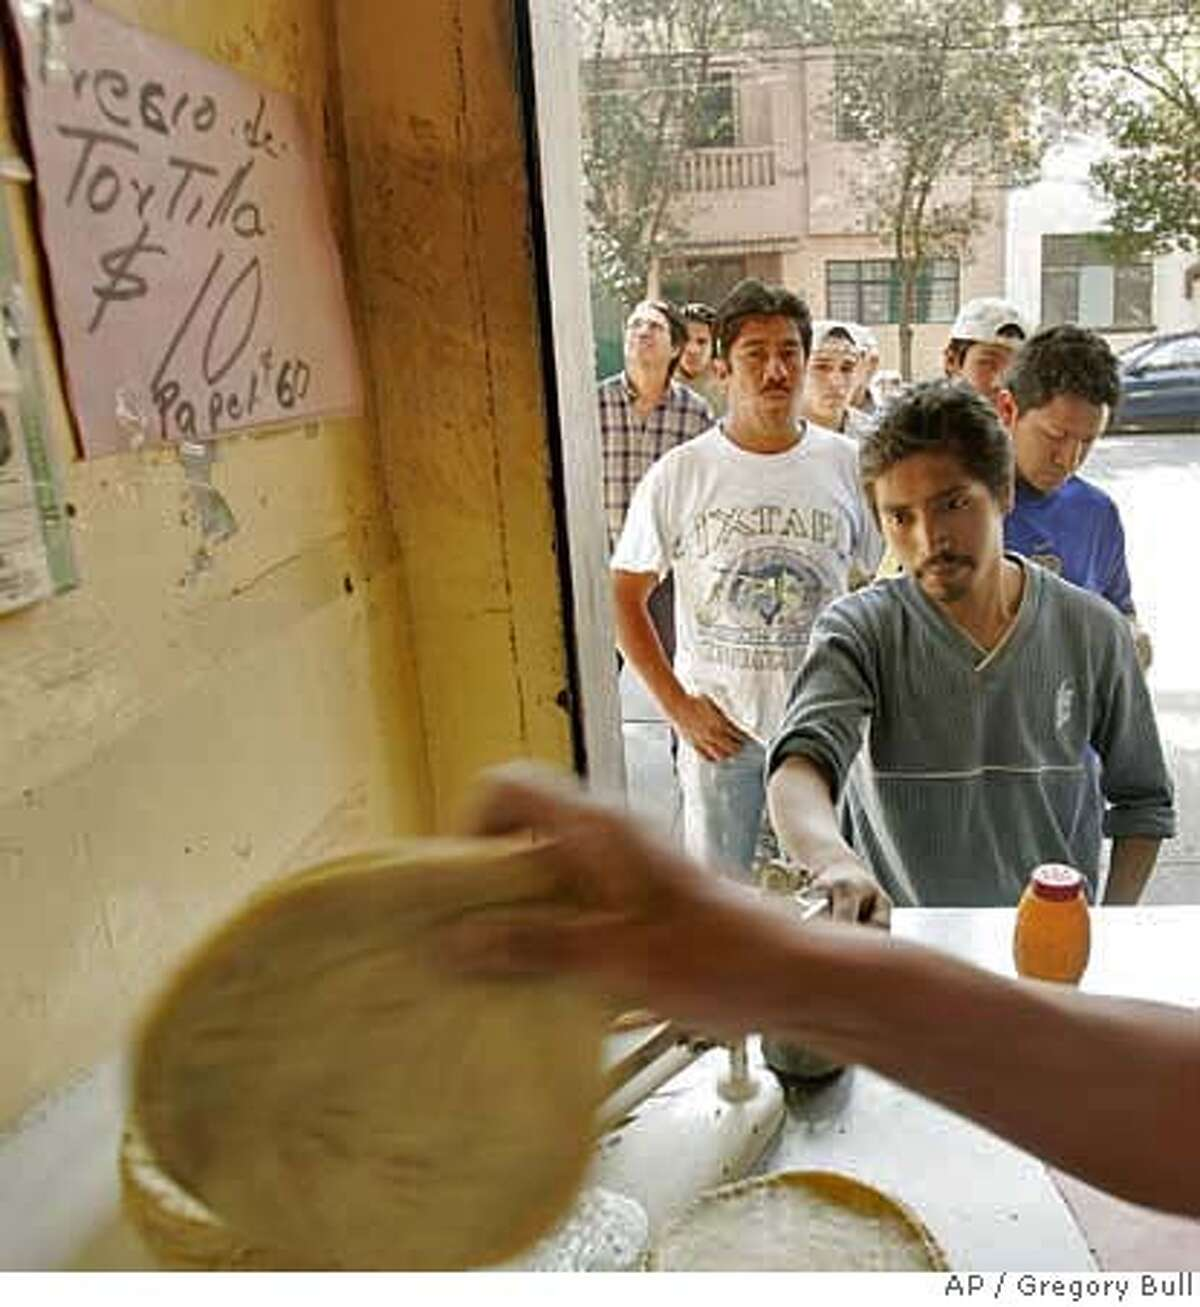 Men wait for tortillas at a tortilla shop in Mexico City, Mexico, Wednesday, Jan. 10, 2007. Tortillas, one of Mexico's most closely regulated commodities, rose in price this month, from seven to ten pesos for one kilo. (AP Photo/Gregory Bull) TO GO WITH STORY ON TORTILLA PRICES BY PETER ORSI EFE OUT